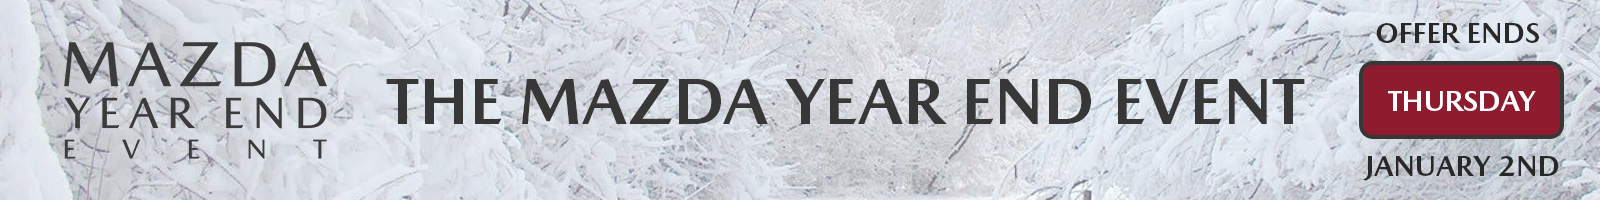 The Mazda Year End Event Ends January 2nd